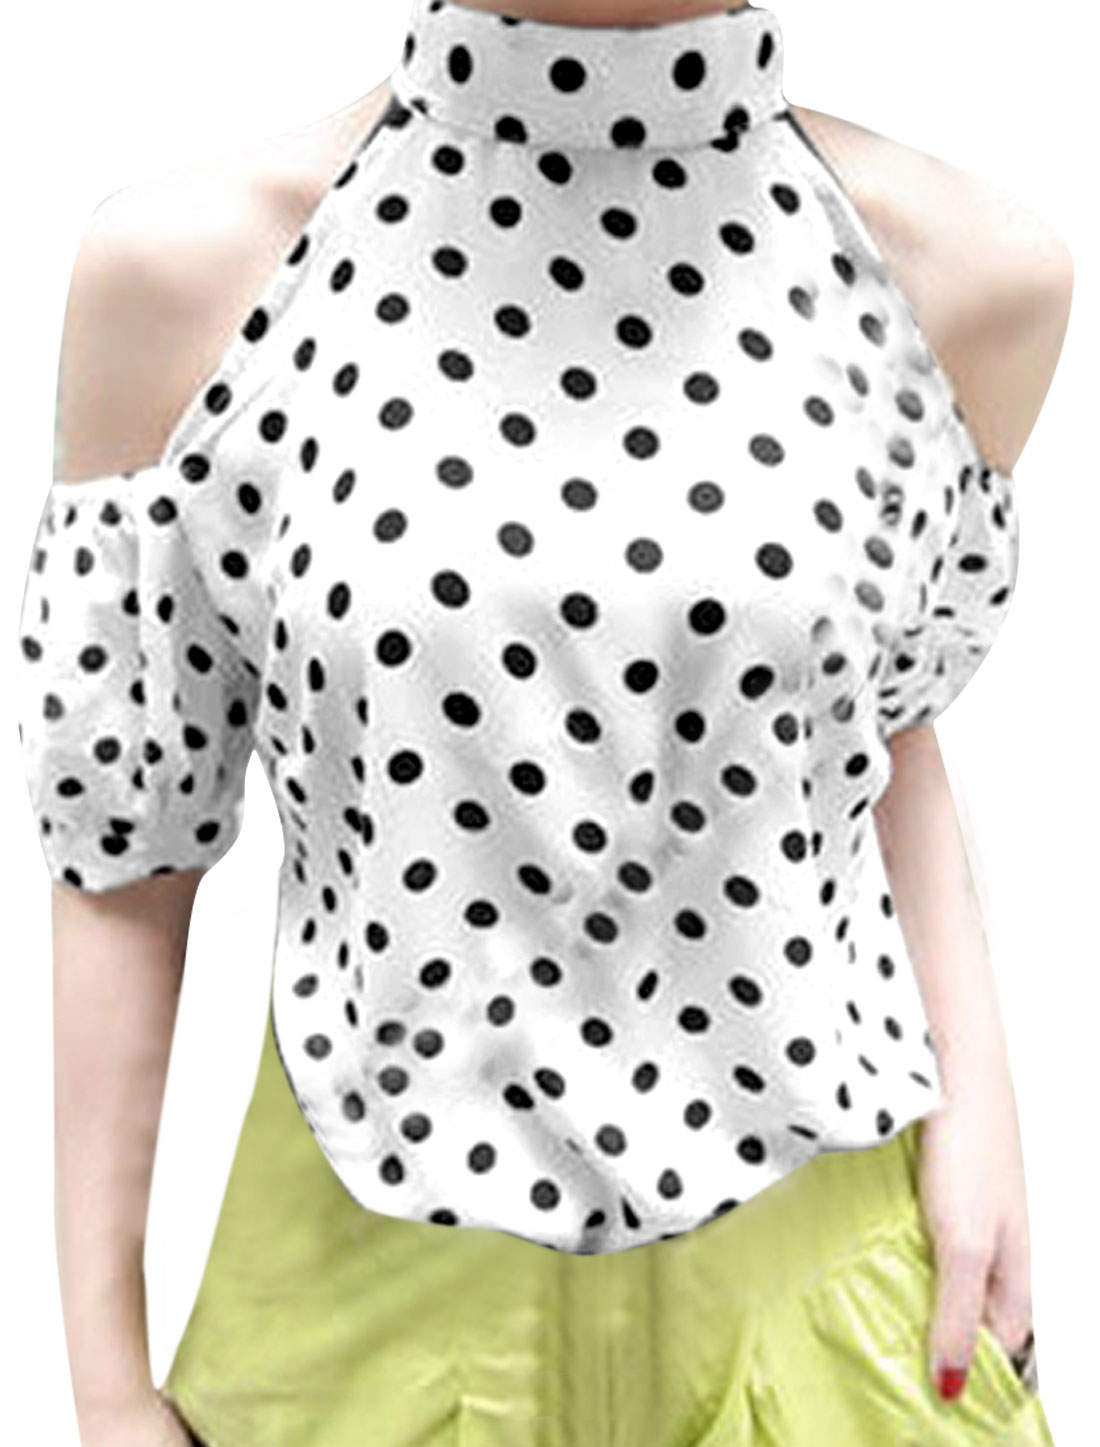 Ladies Stand Collr Cutout Shoulder Design White Dots Pattern Casual Blouse S